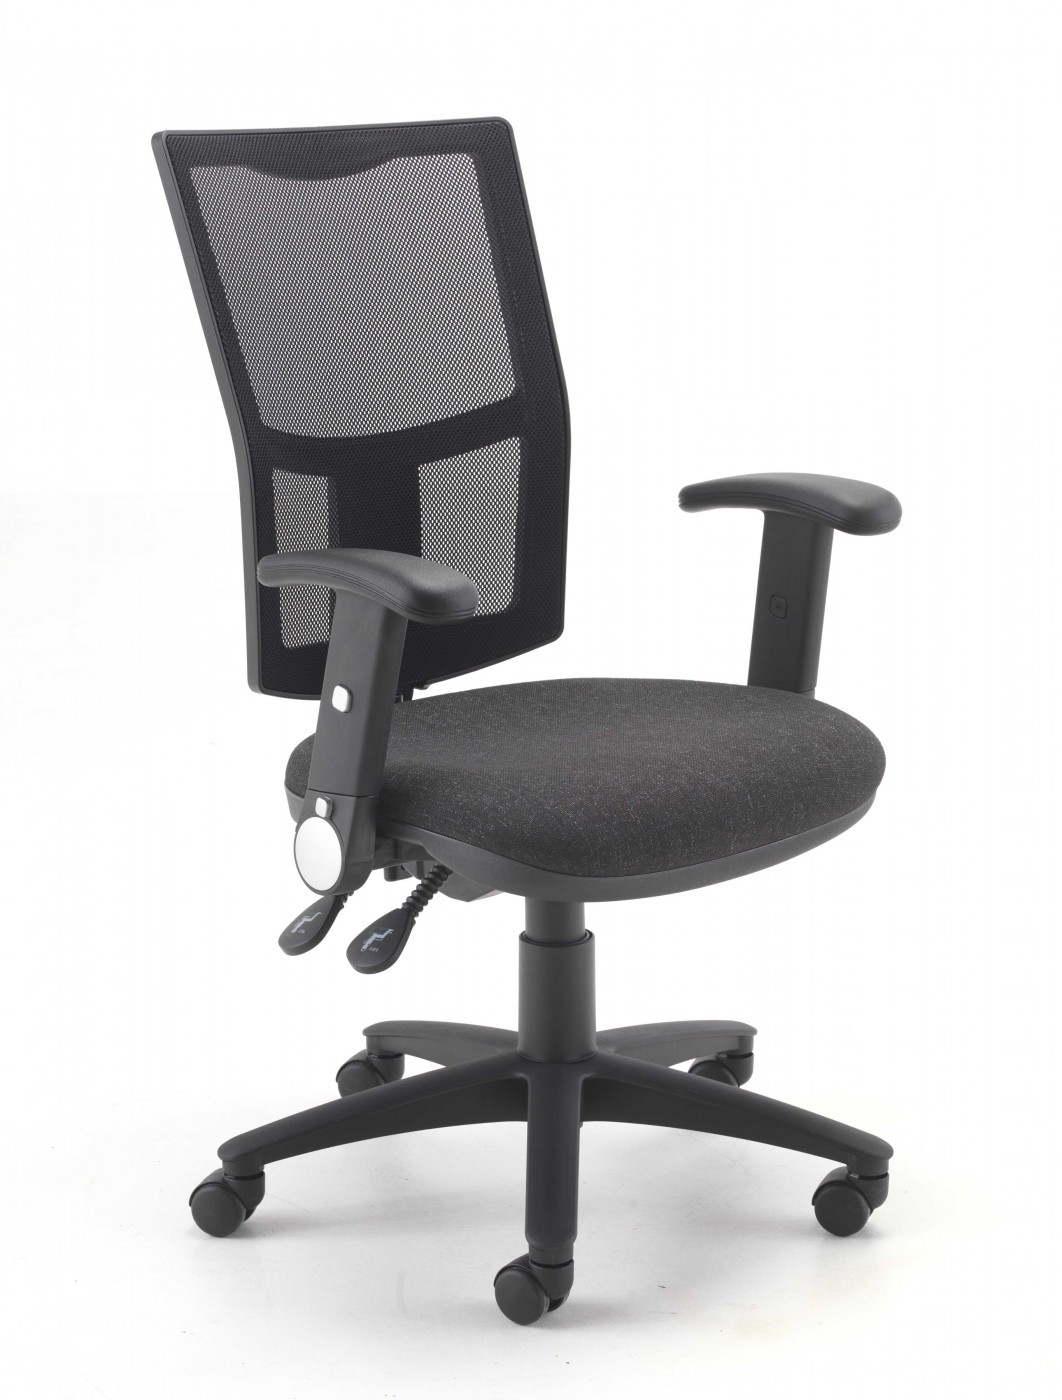 mesh back chairs for office cooper co beach tc chair ch2803 43ac1082 121 furniture